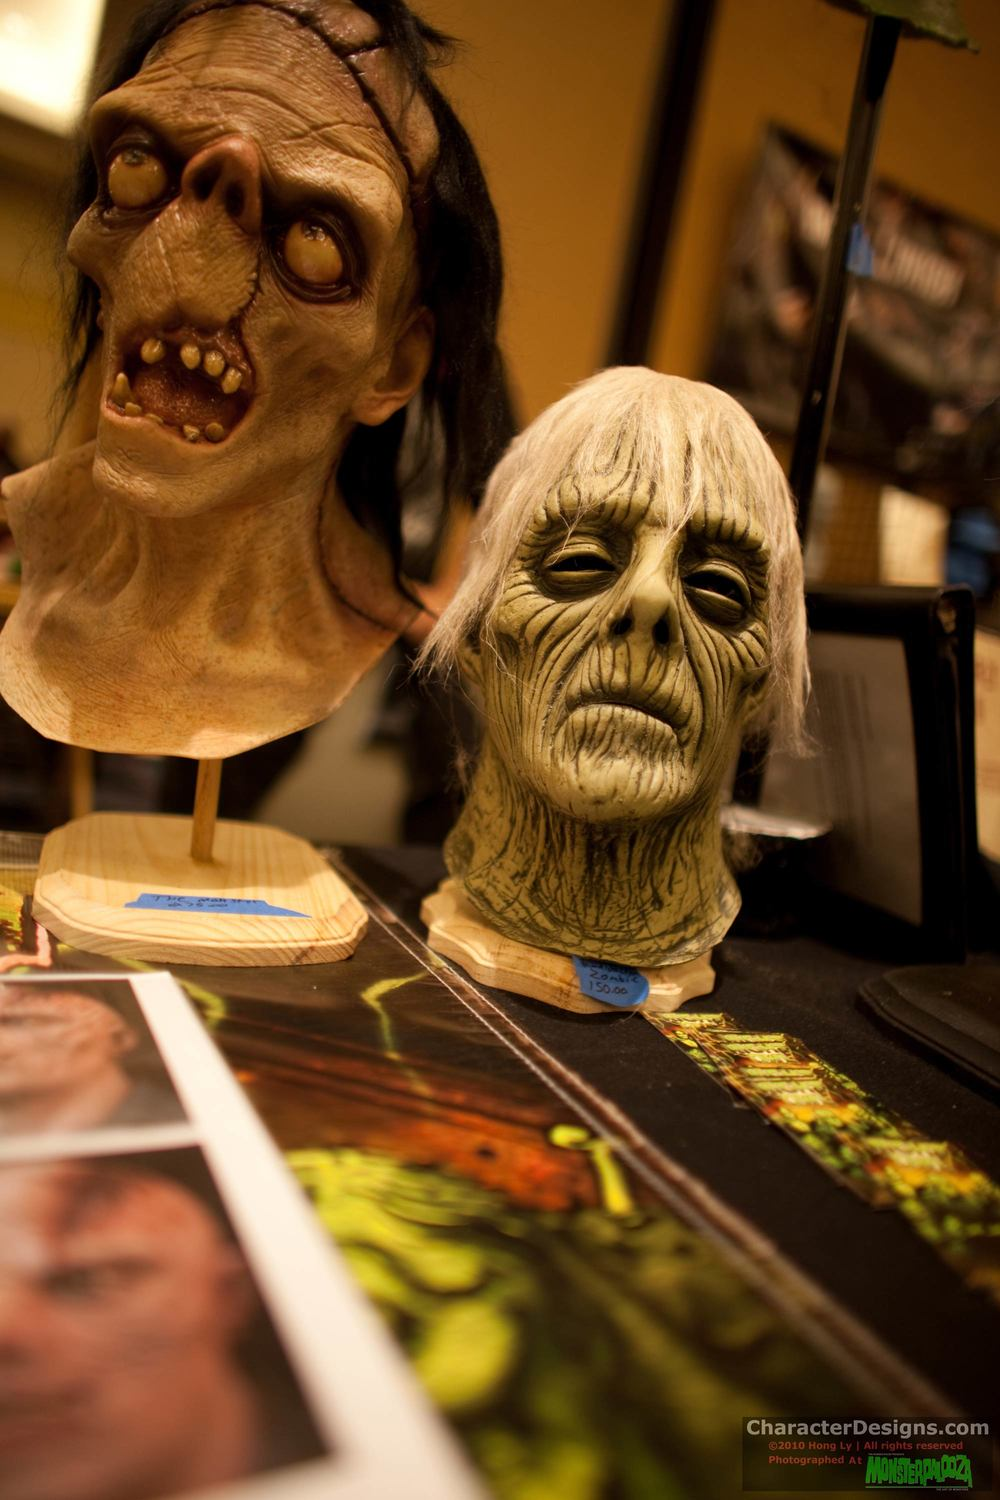 2010_Monsterpalooza_025.jpg